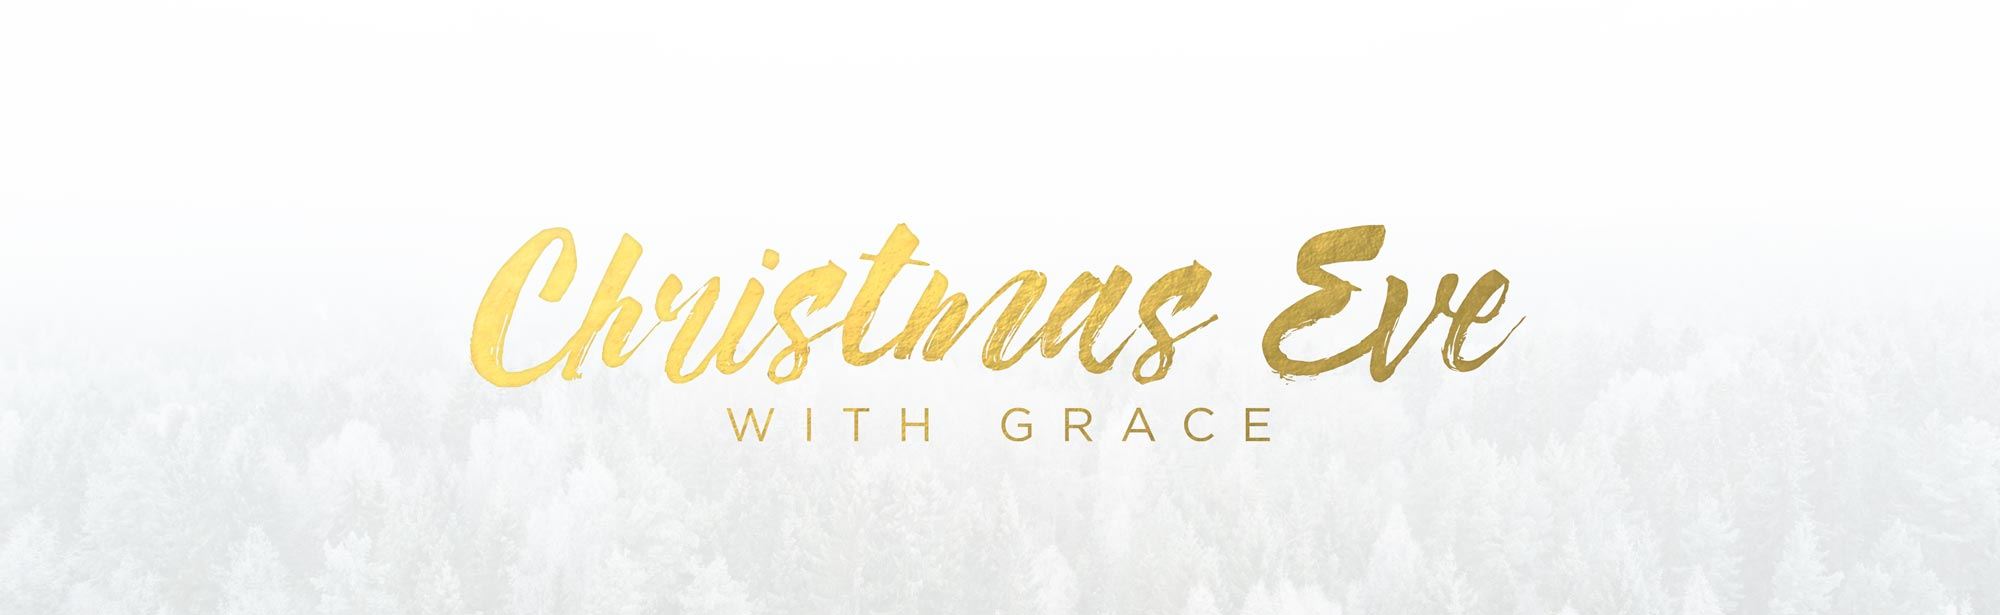 Christmas Eve with Grace 2017 - Services at 9:00am, 10:45am & 2:00pm - Grace Community Church